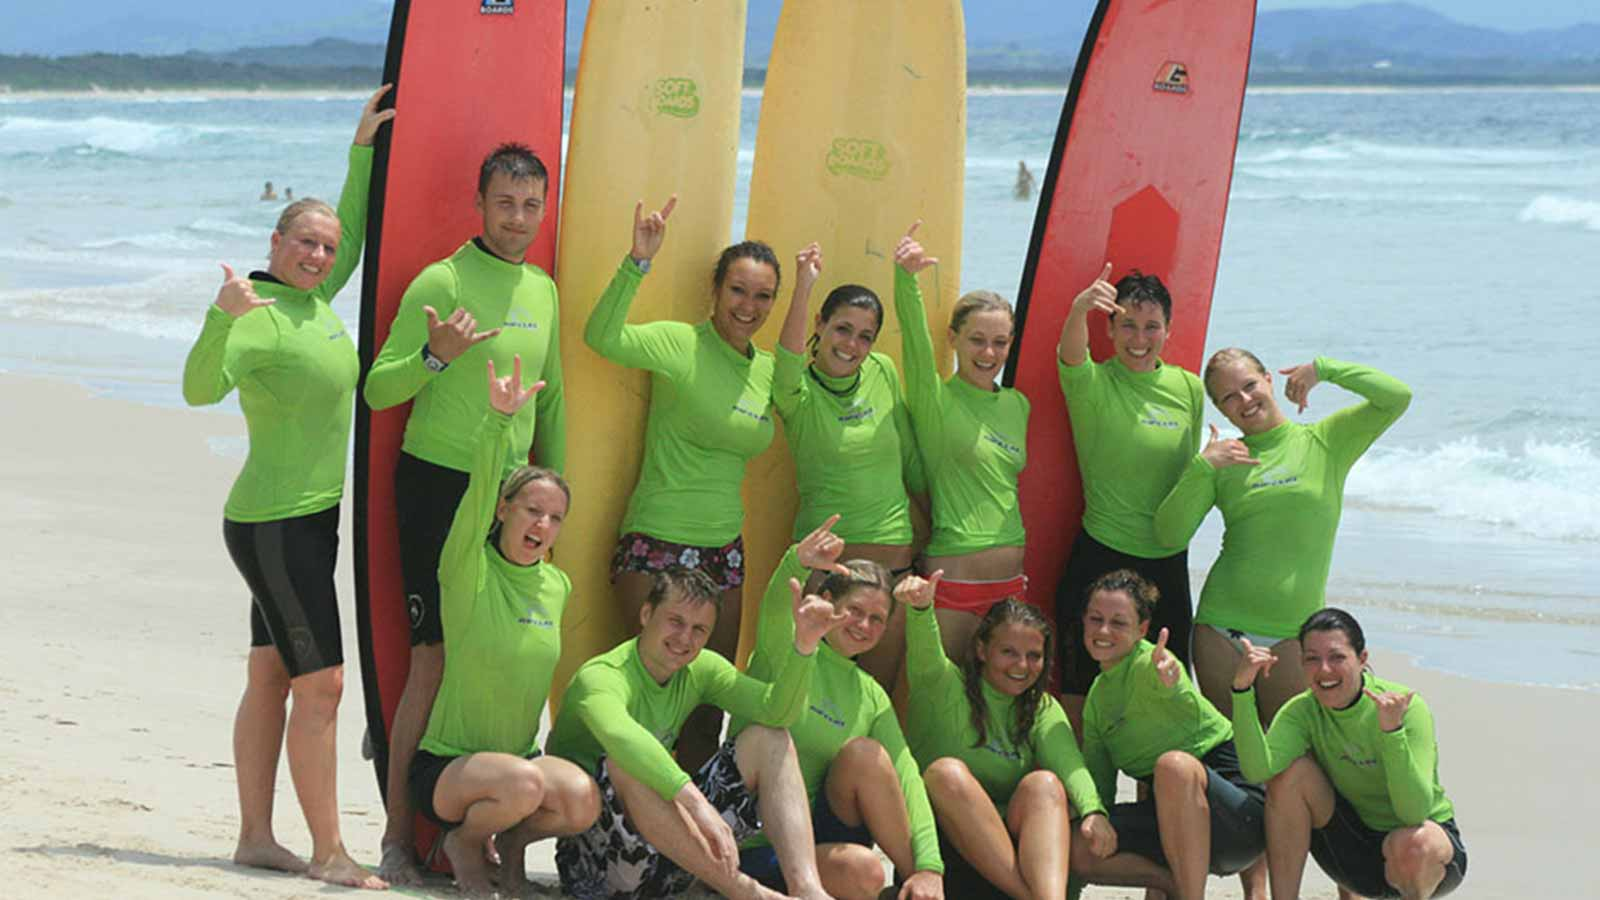 After surfing group shot